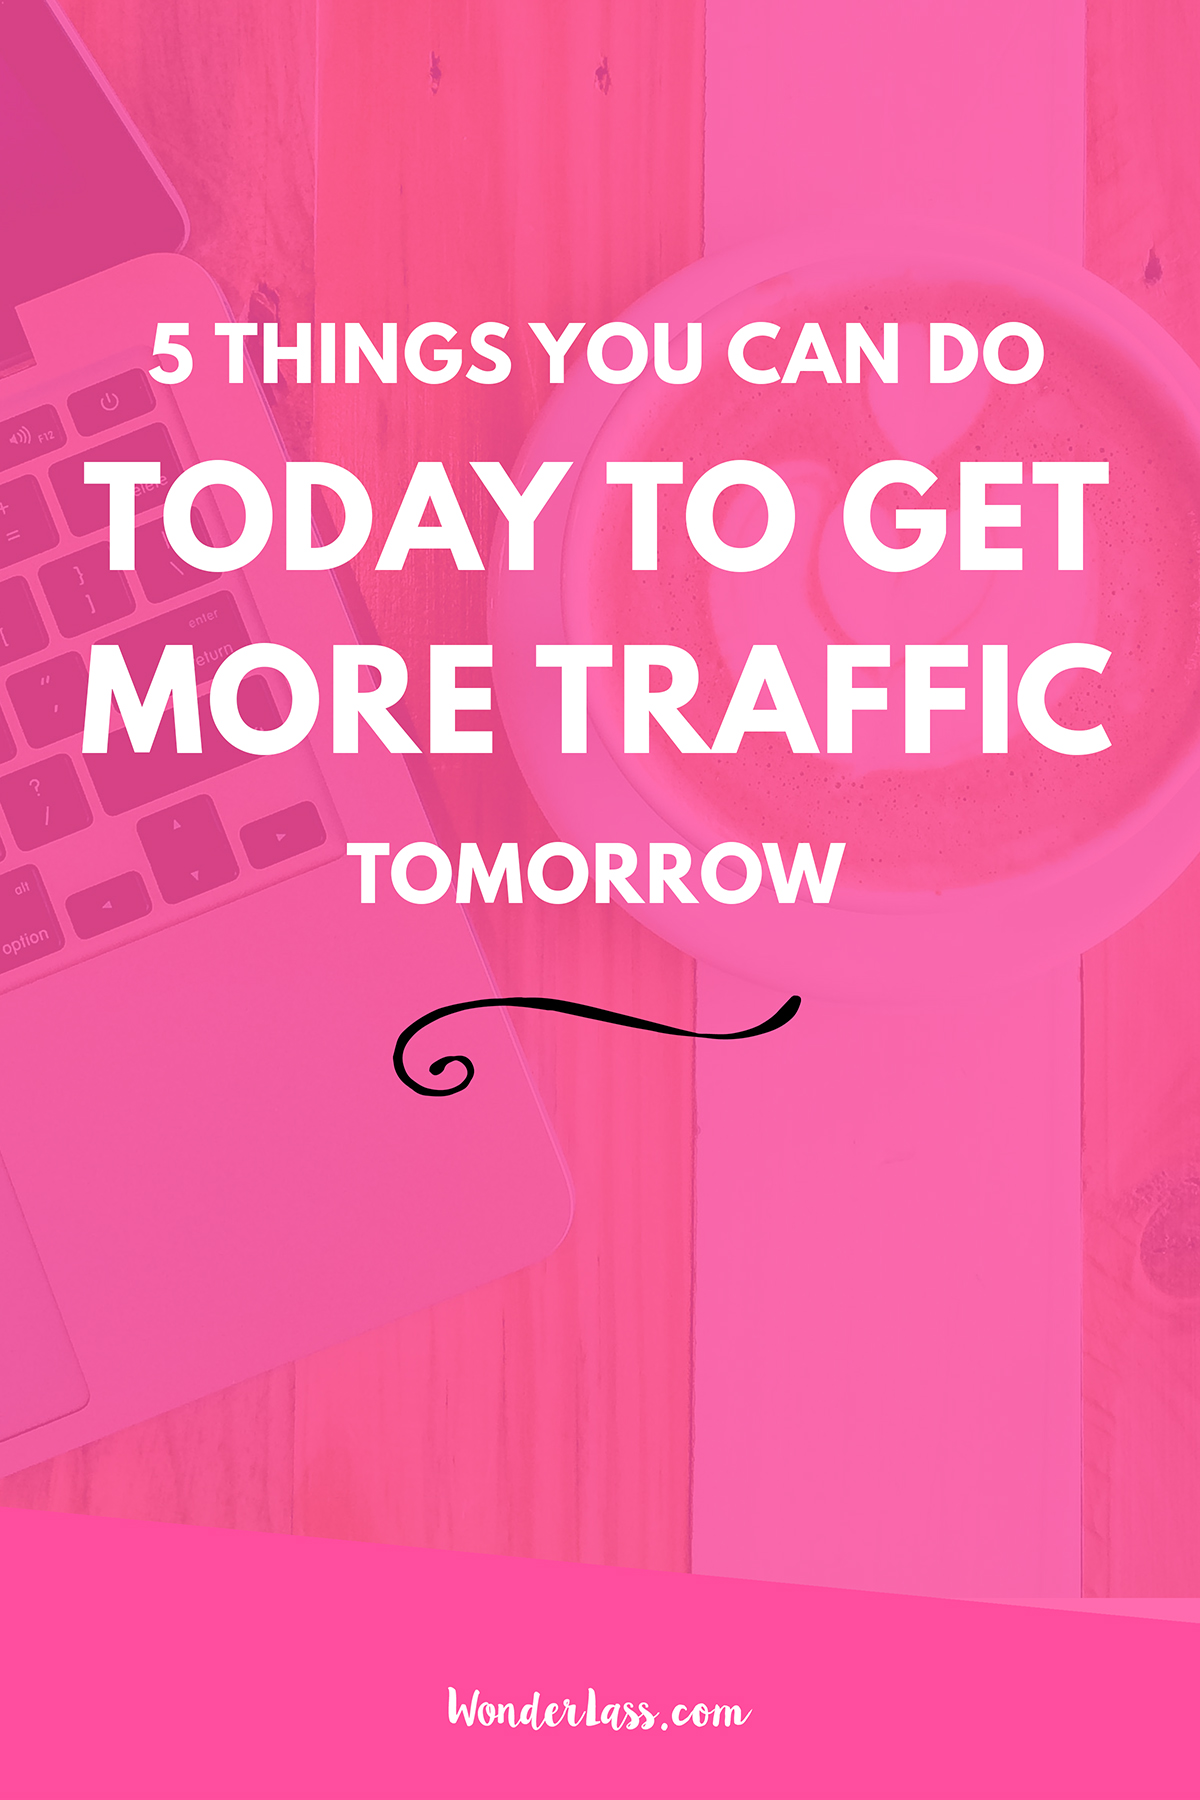 5 Things You Can Do TODAY to Get More Website Traffic Tomorrow   Wonderlass